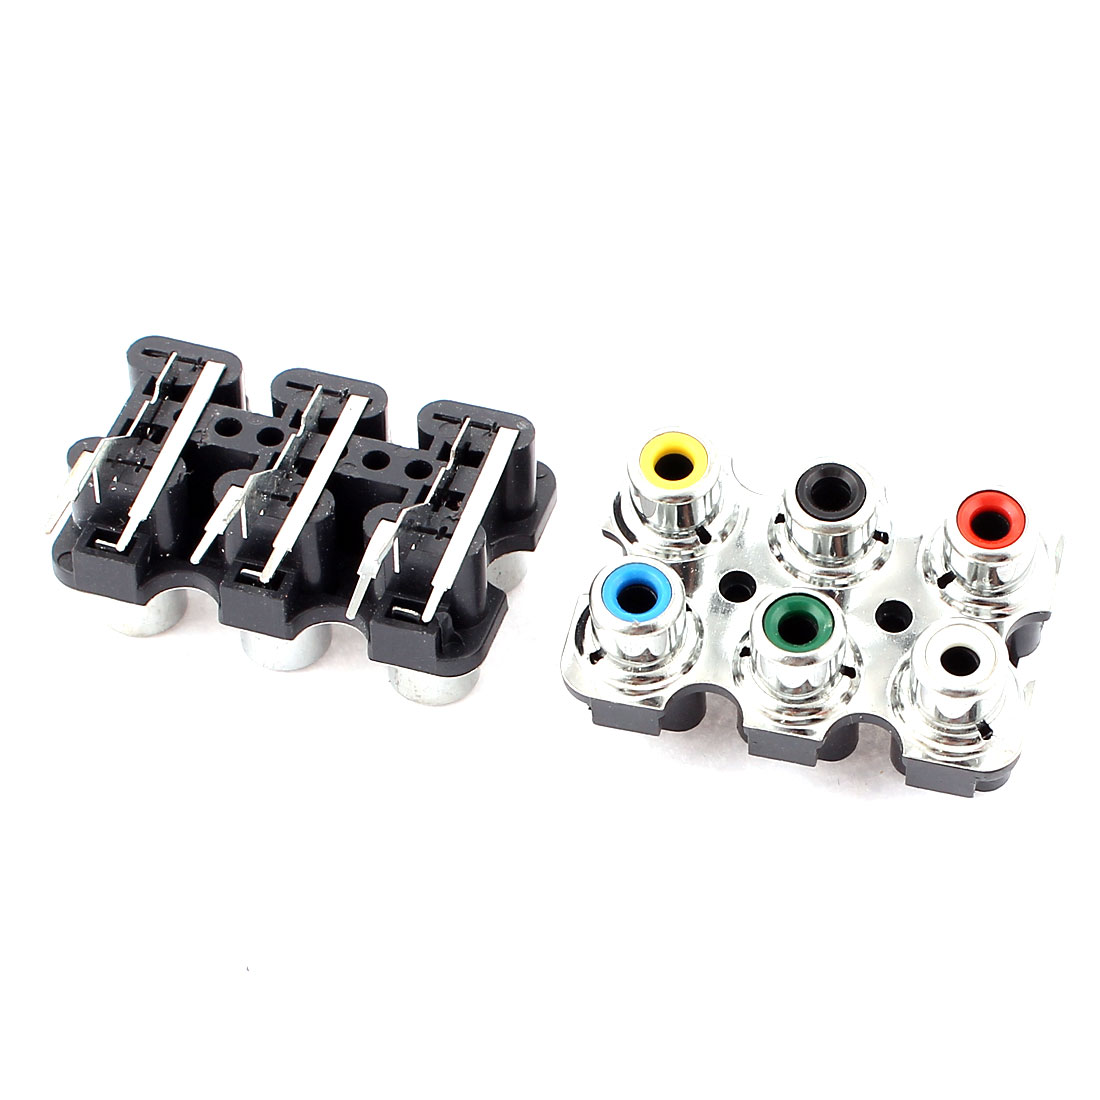 2pcs 6 Way PCB Mount Stereo Audio Video Jack AV Socket RCA Female Connector